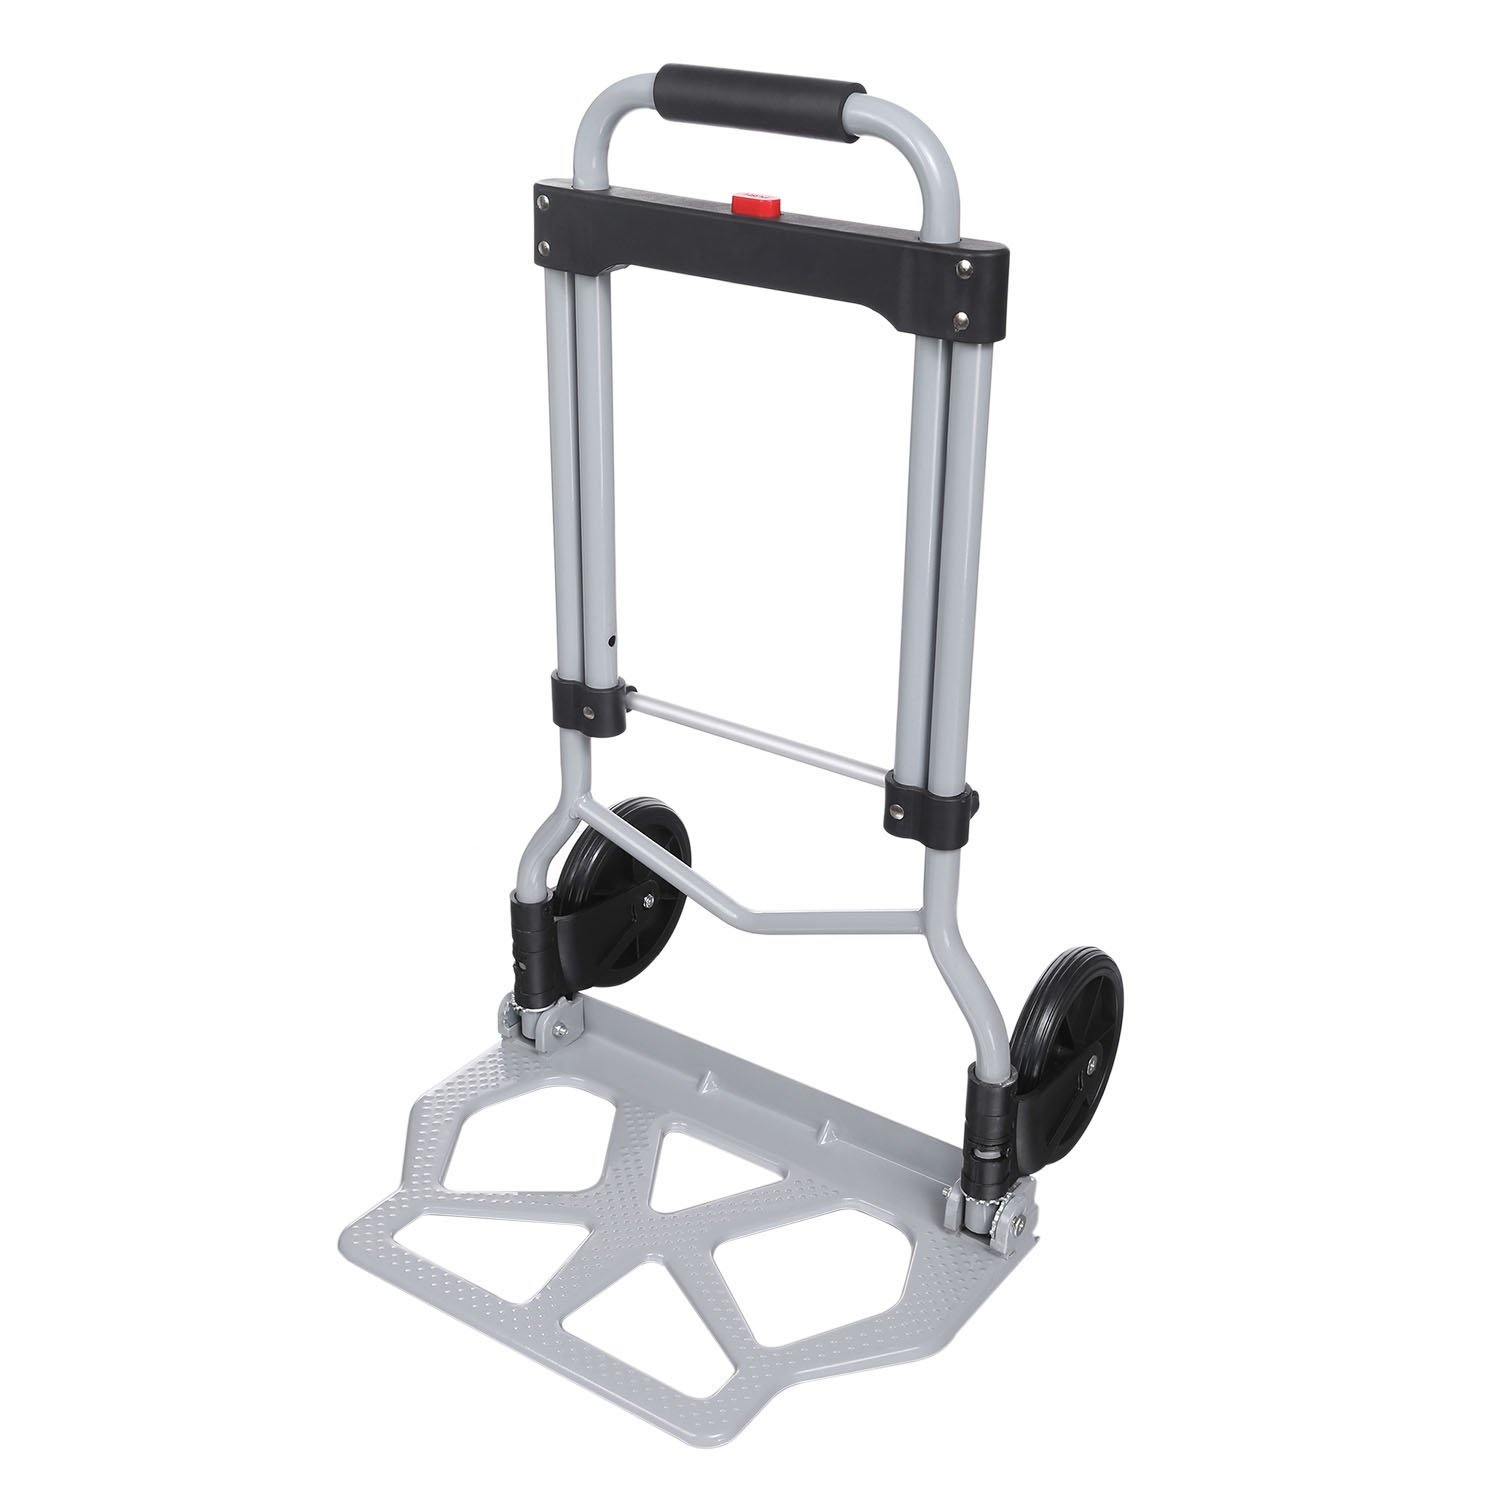 Portable Heavy Duty Folding Hand Truck Luggage Cart Large Capacity, Industrial/Travel/Shopping (220 lbs)